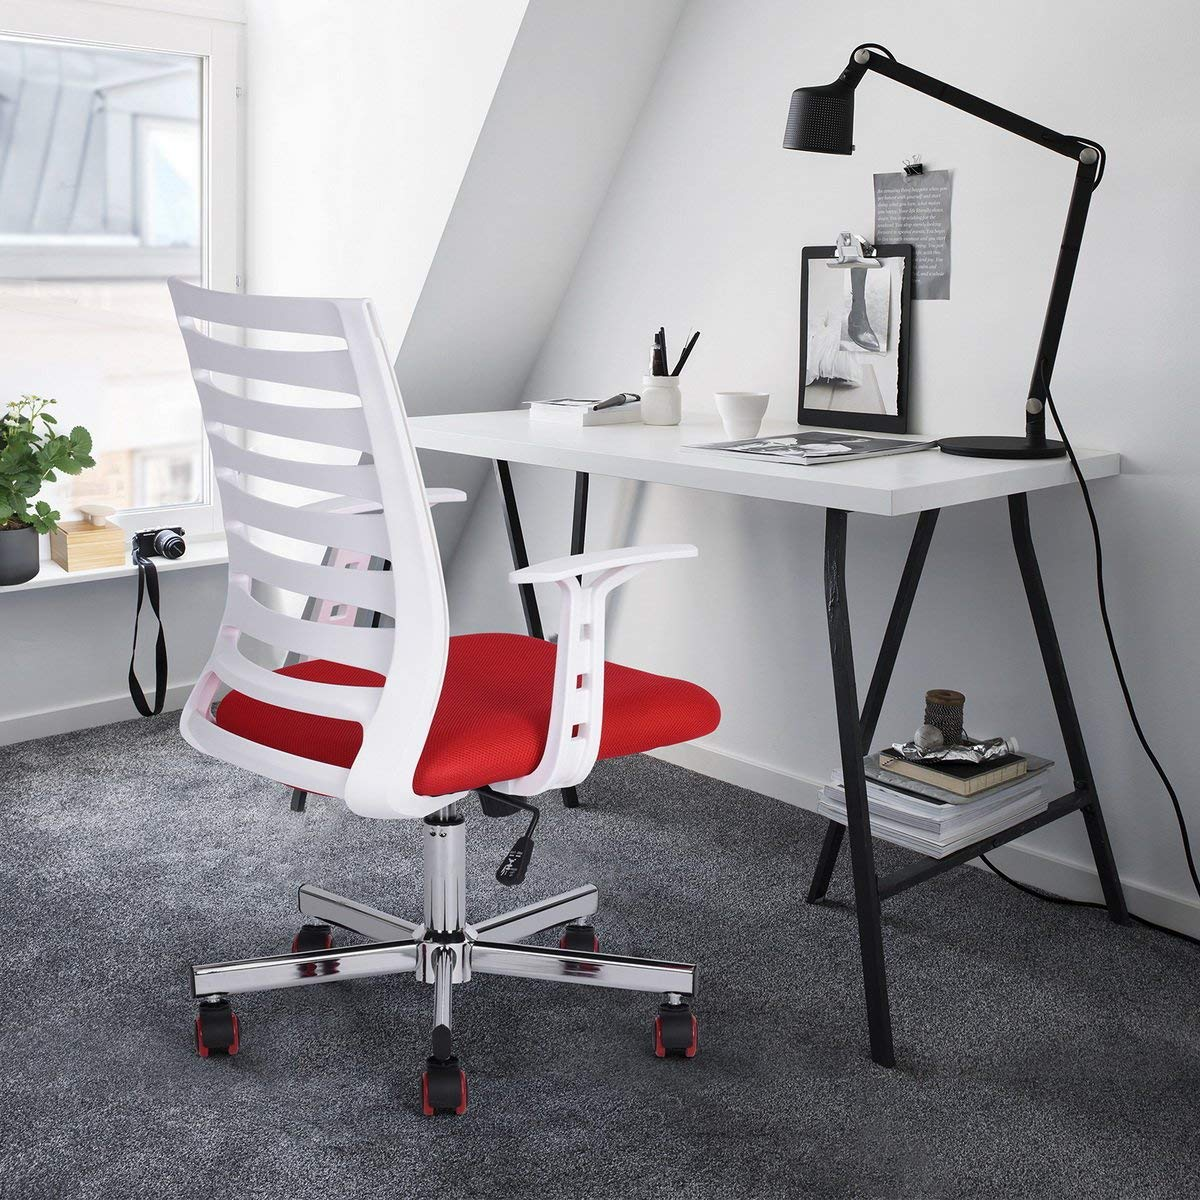 Molded Chair with Adjustable Height & Wheels Home Office Chairs Swivel Adjustable Mid-Back Special Design Back with Tilt Lumbar Support Red/White